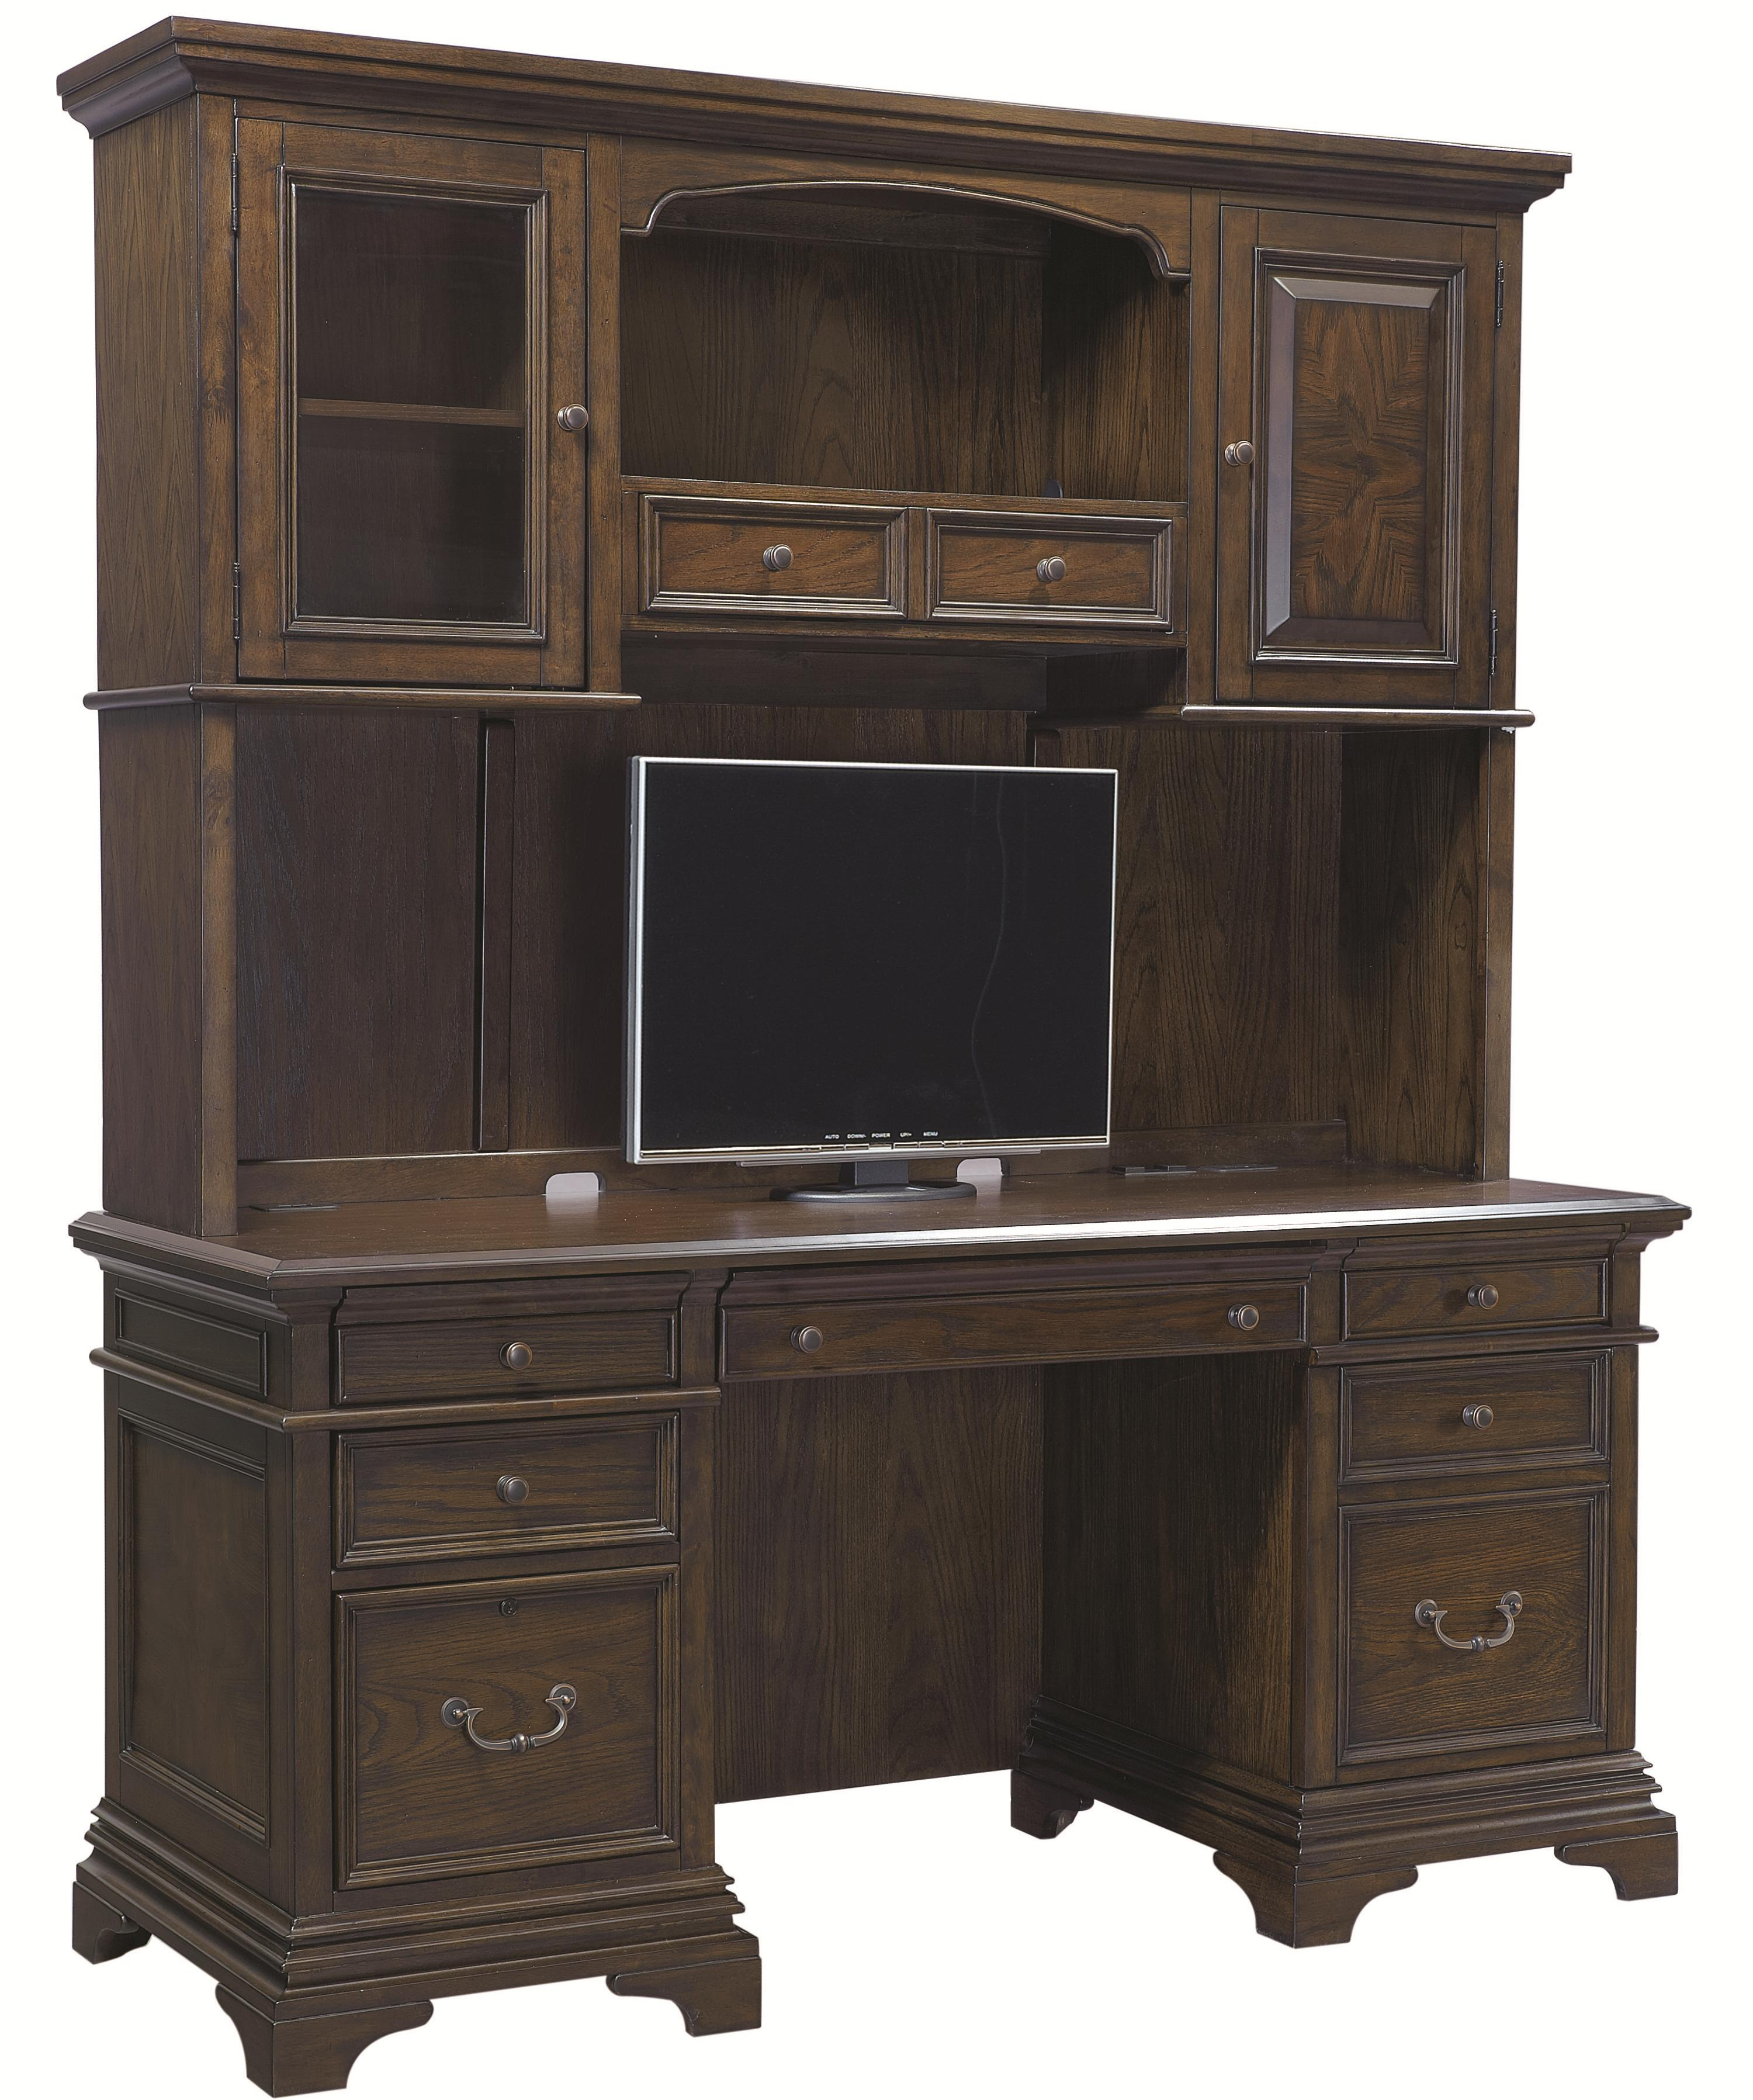 Aspenhome Essex Credenza and Hutch - Item Number: I24-316+7